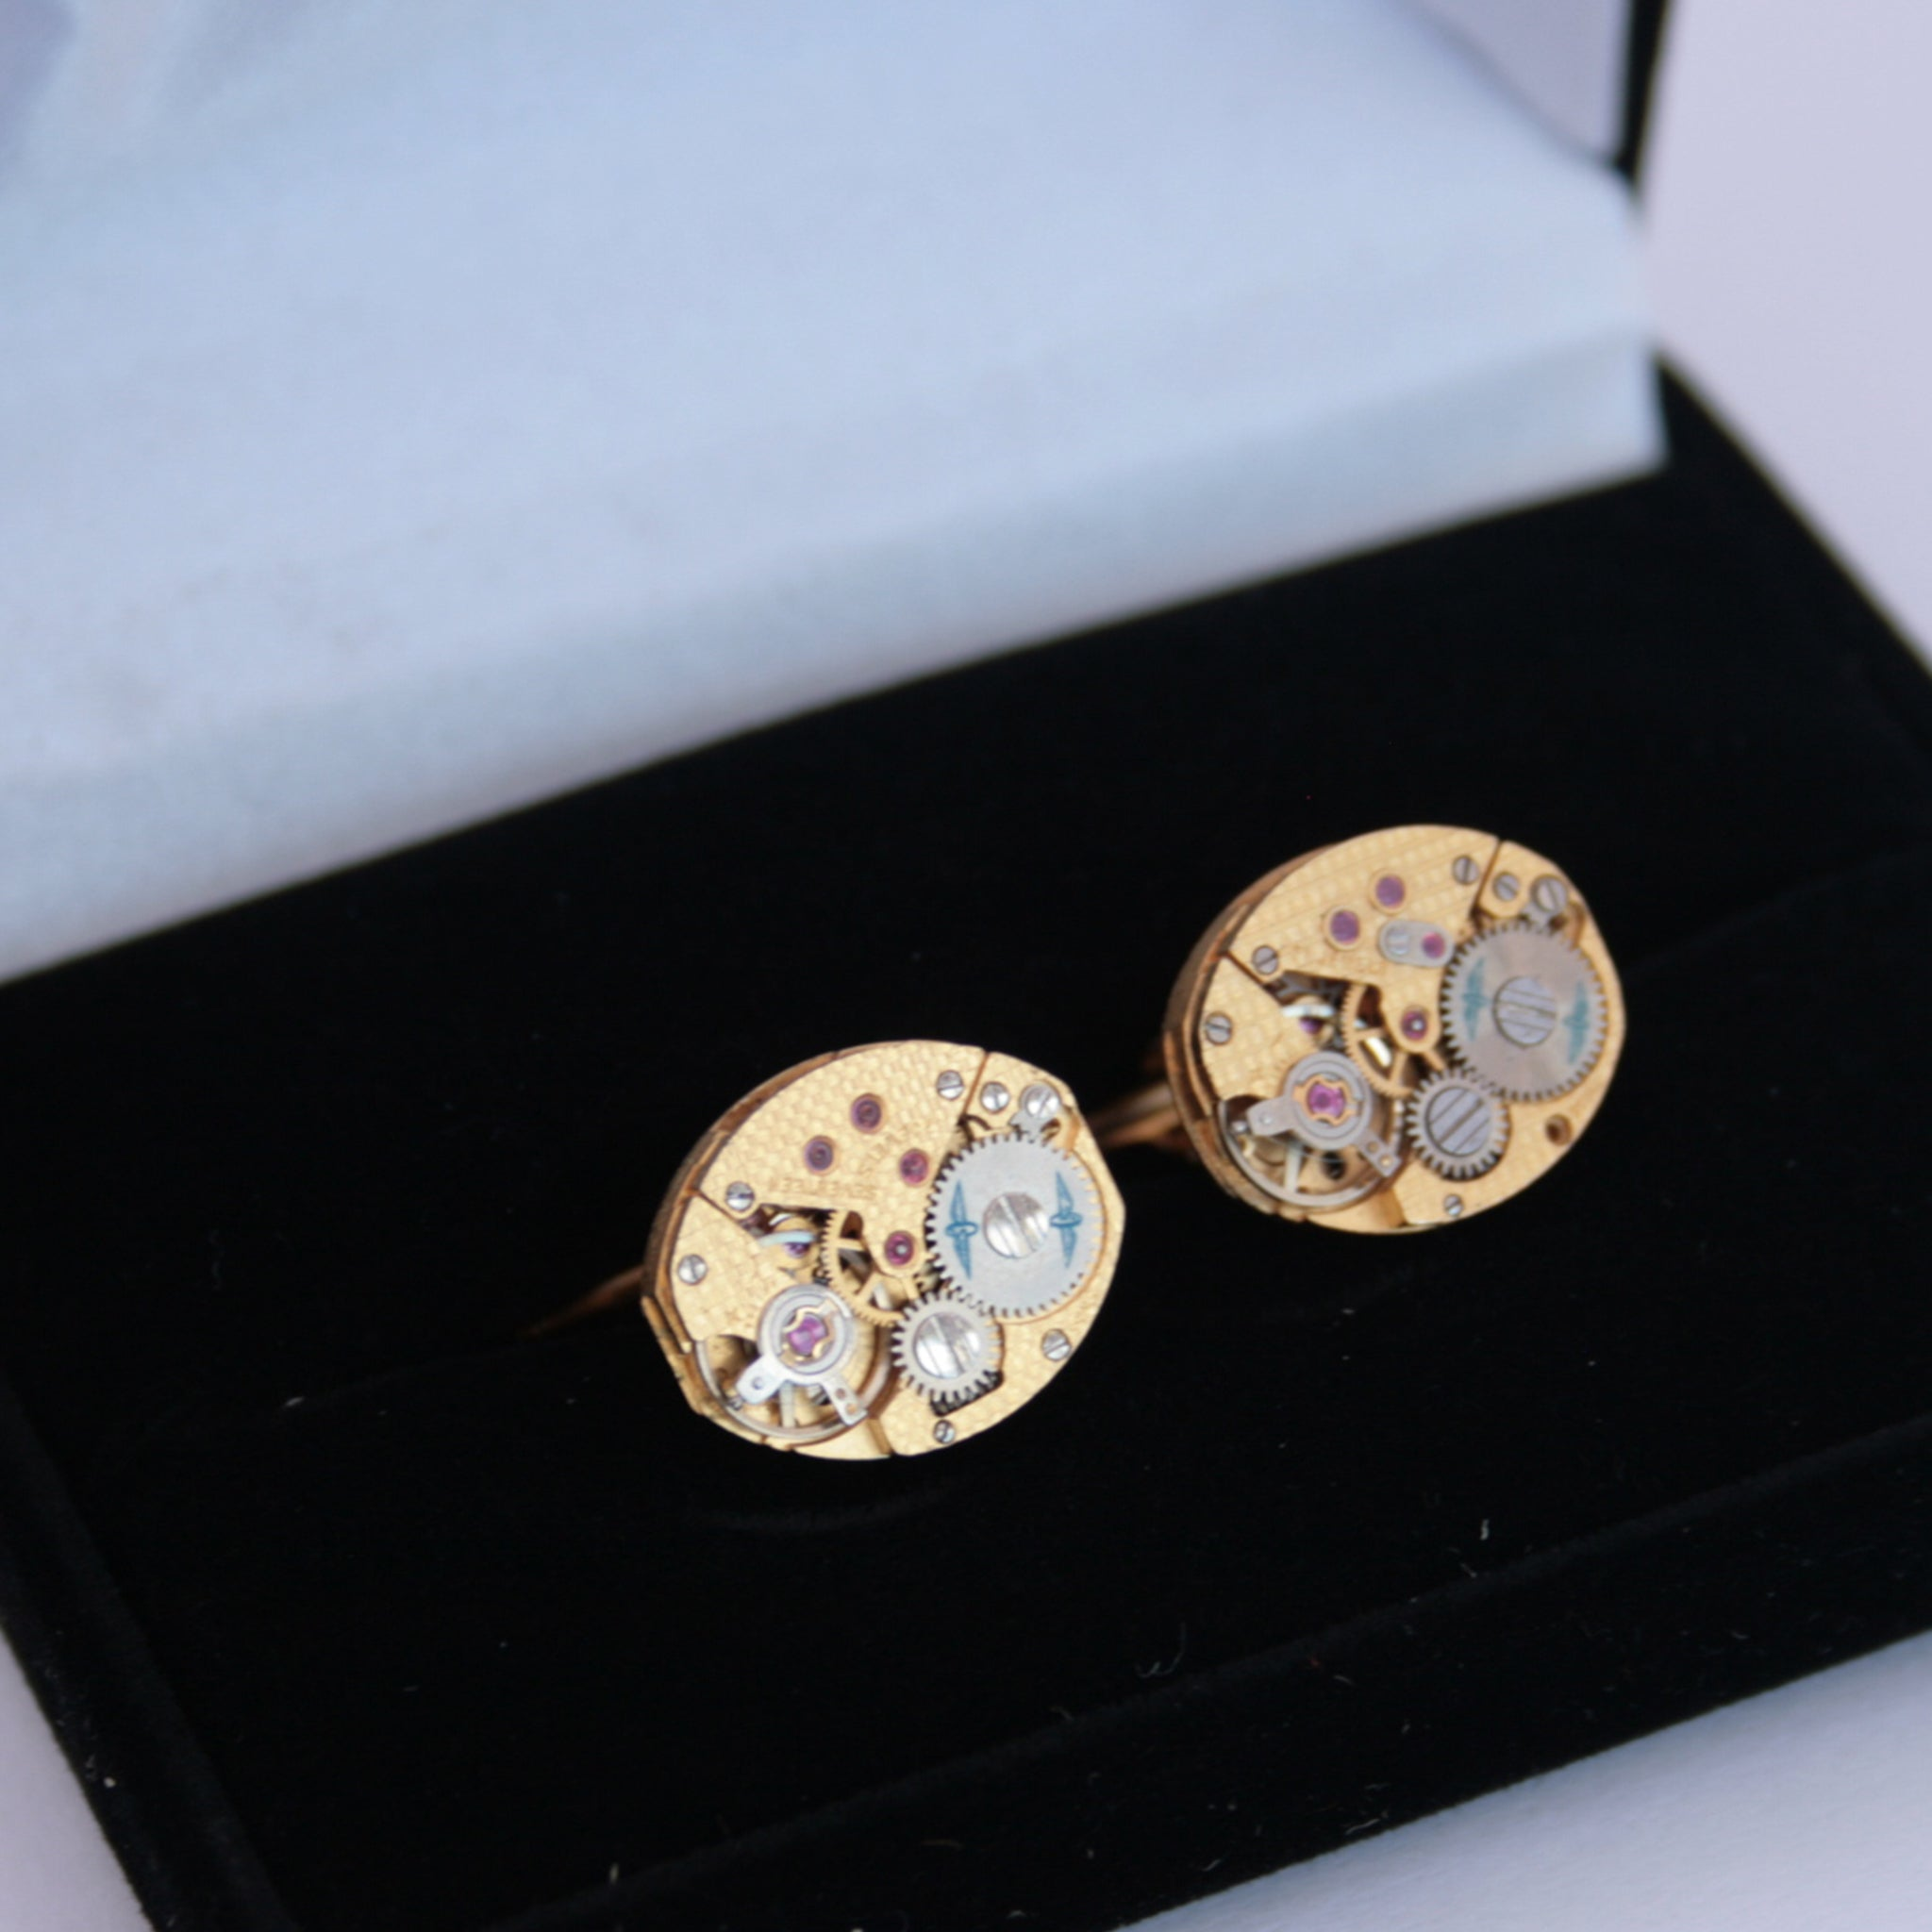 Gold Rotary Watch Cufflinks made of clockworks in a box